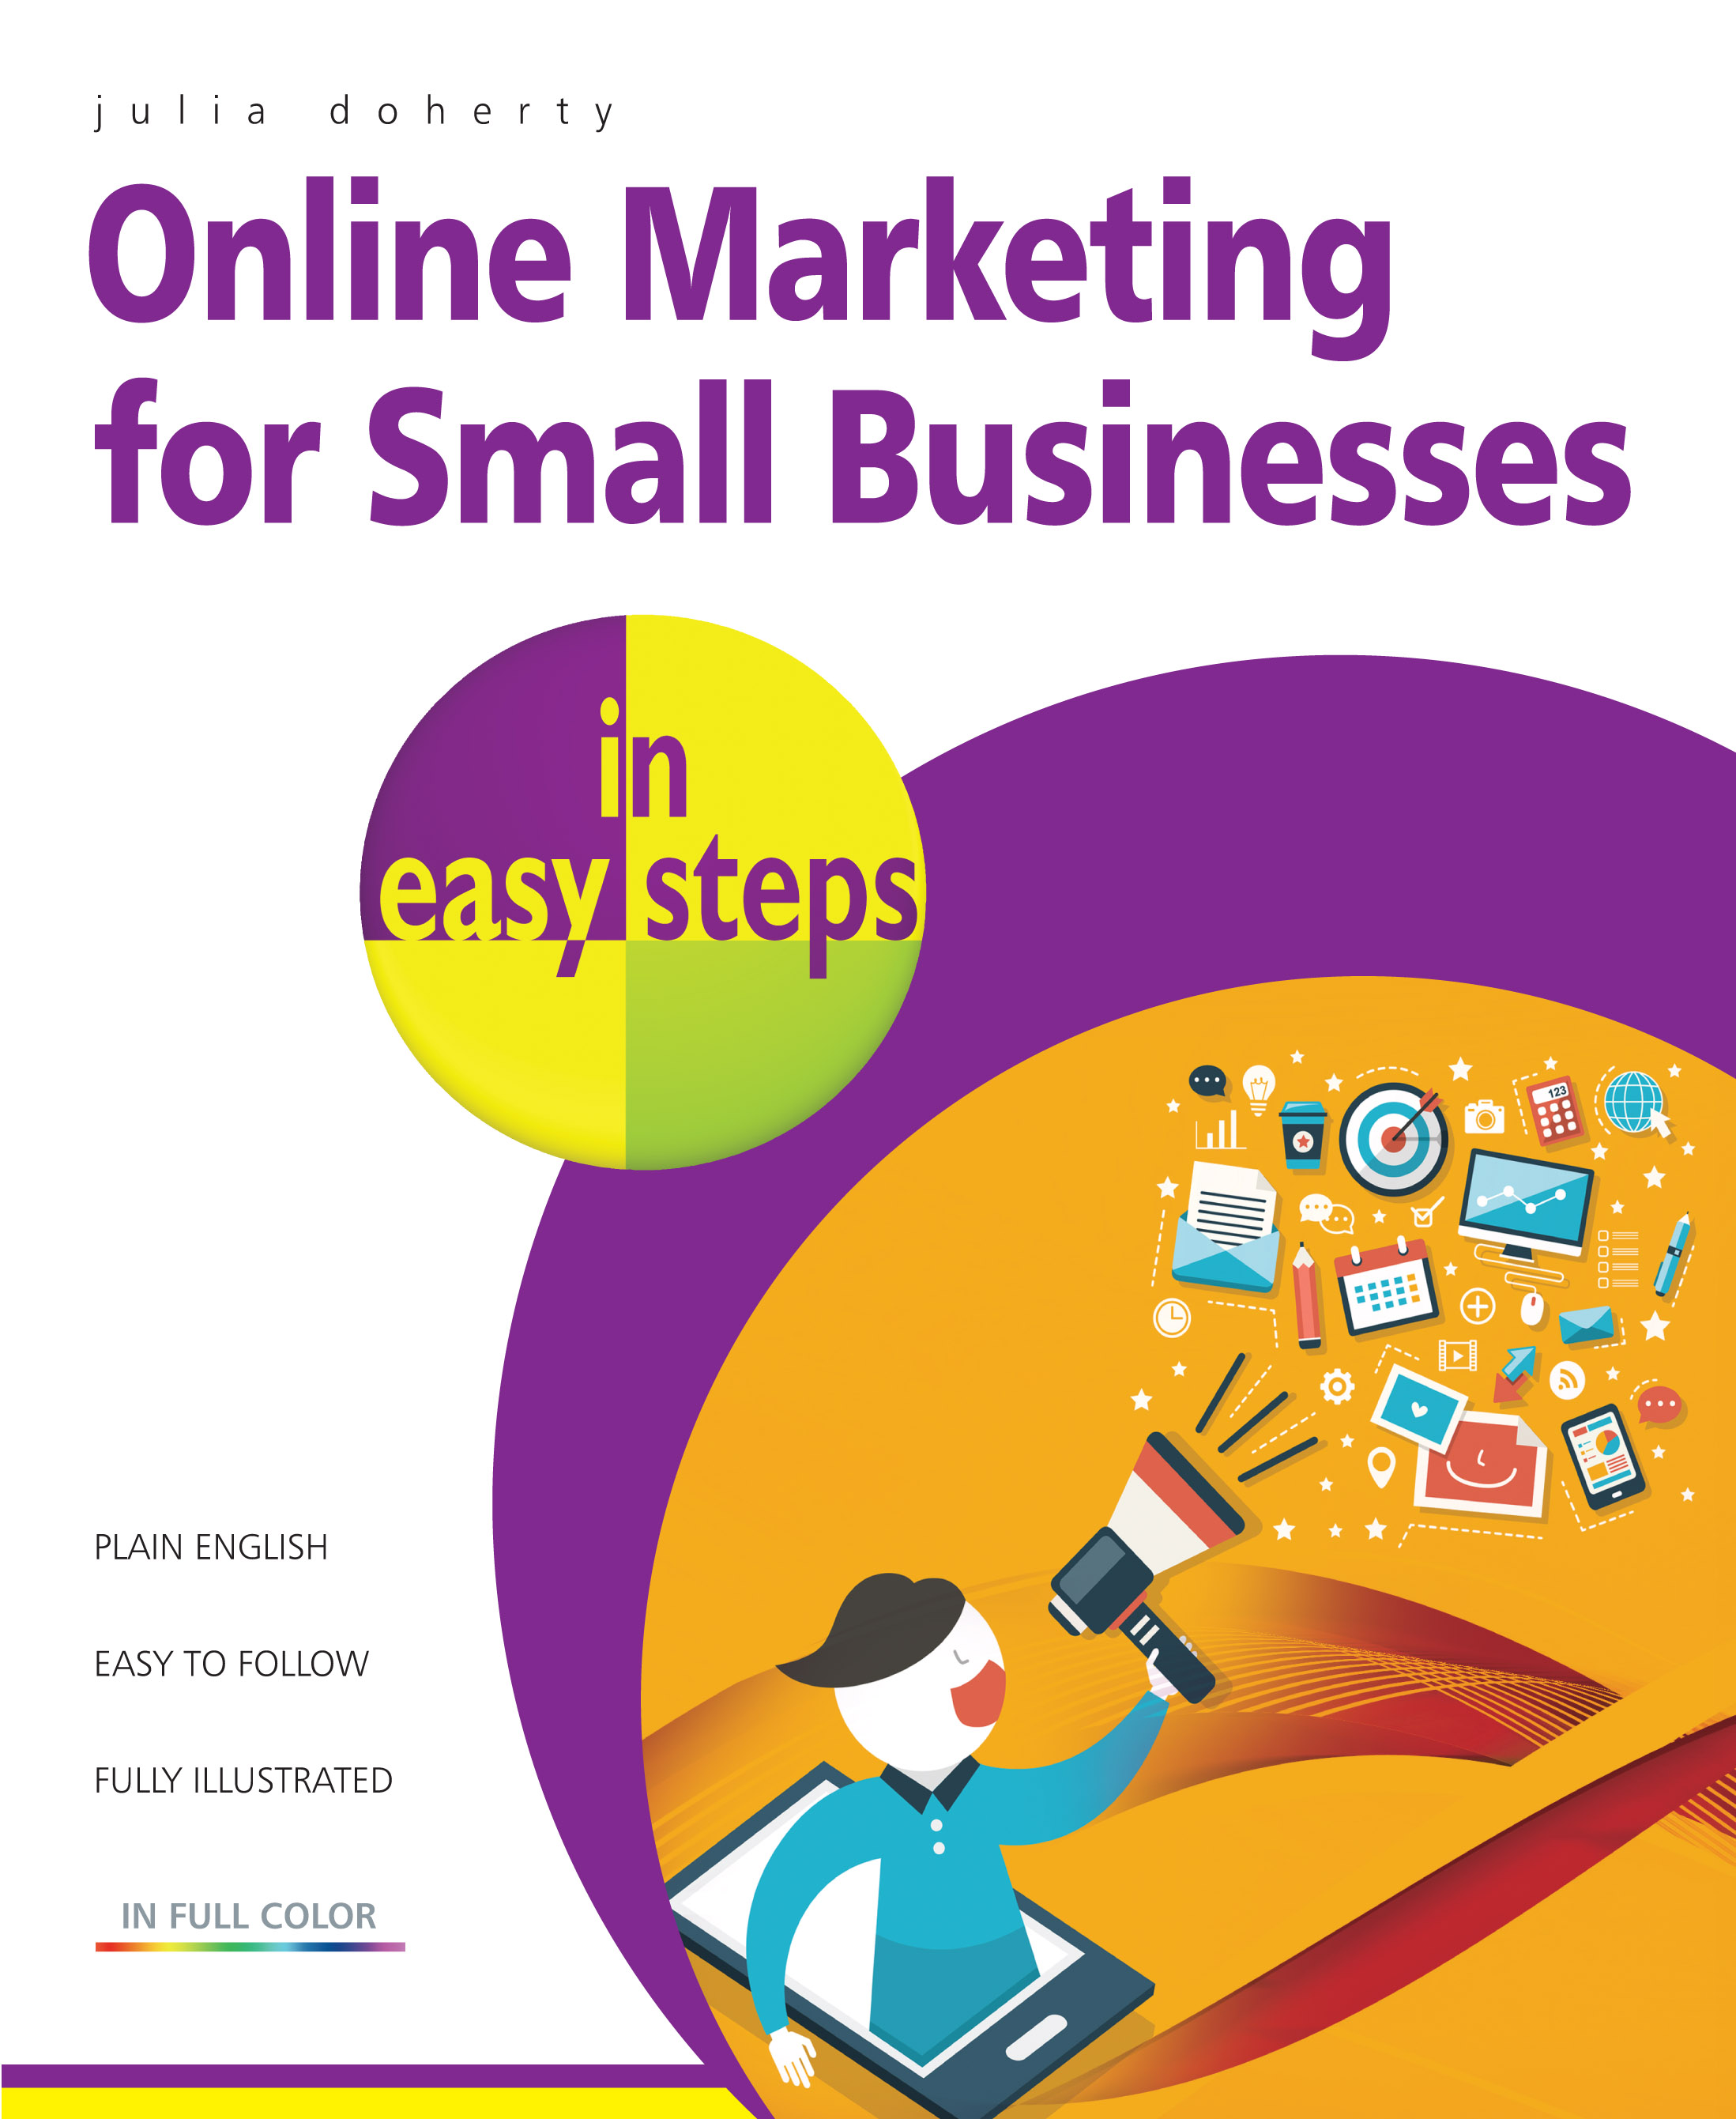 9781840786286 Online Marketing for Small Businesses in easy steps